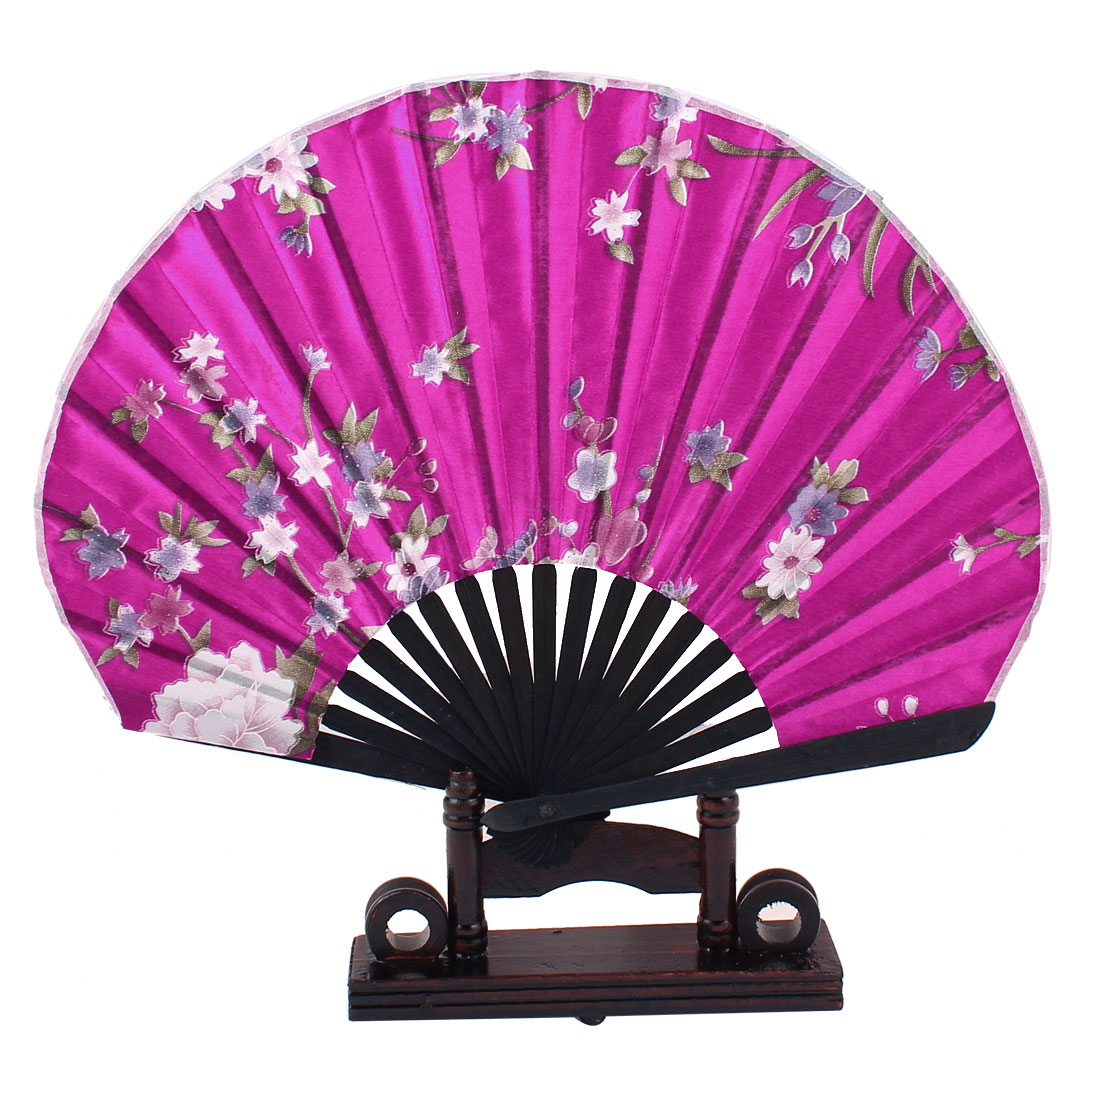 Home Decor Green Leaves Purple Floral Printed Fuchsia Fabric Bamboo Ribs Folding Hand Fan Decor Gift w Holder